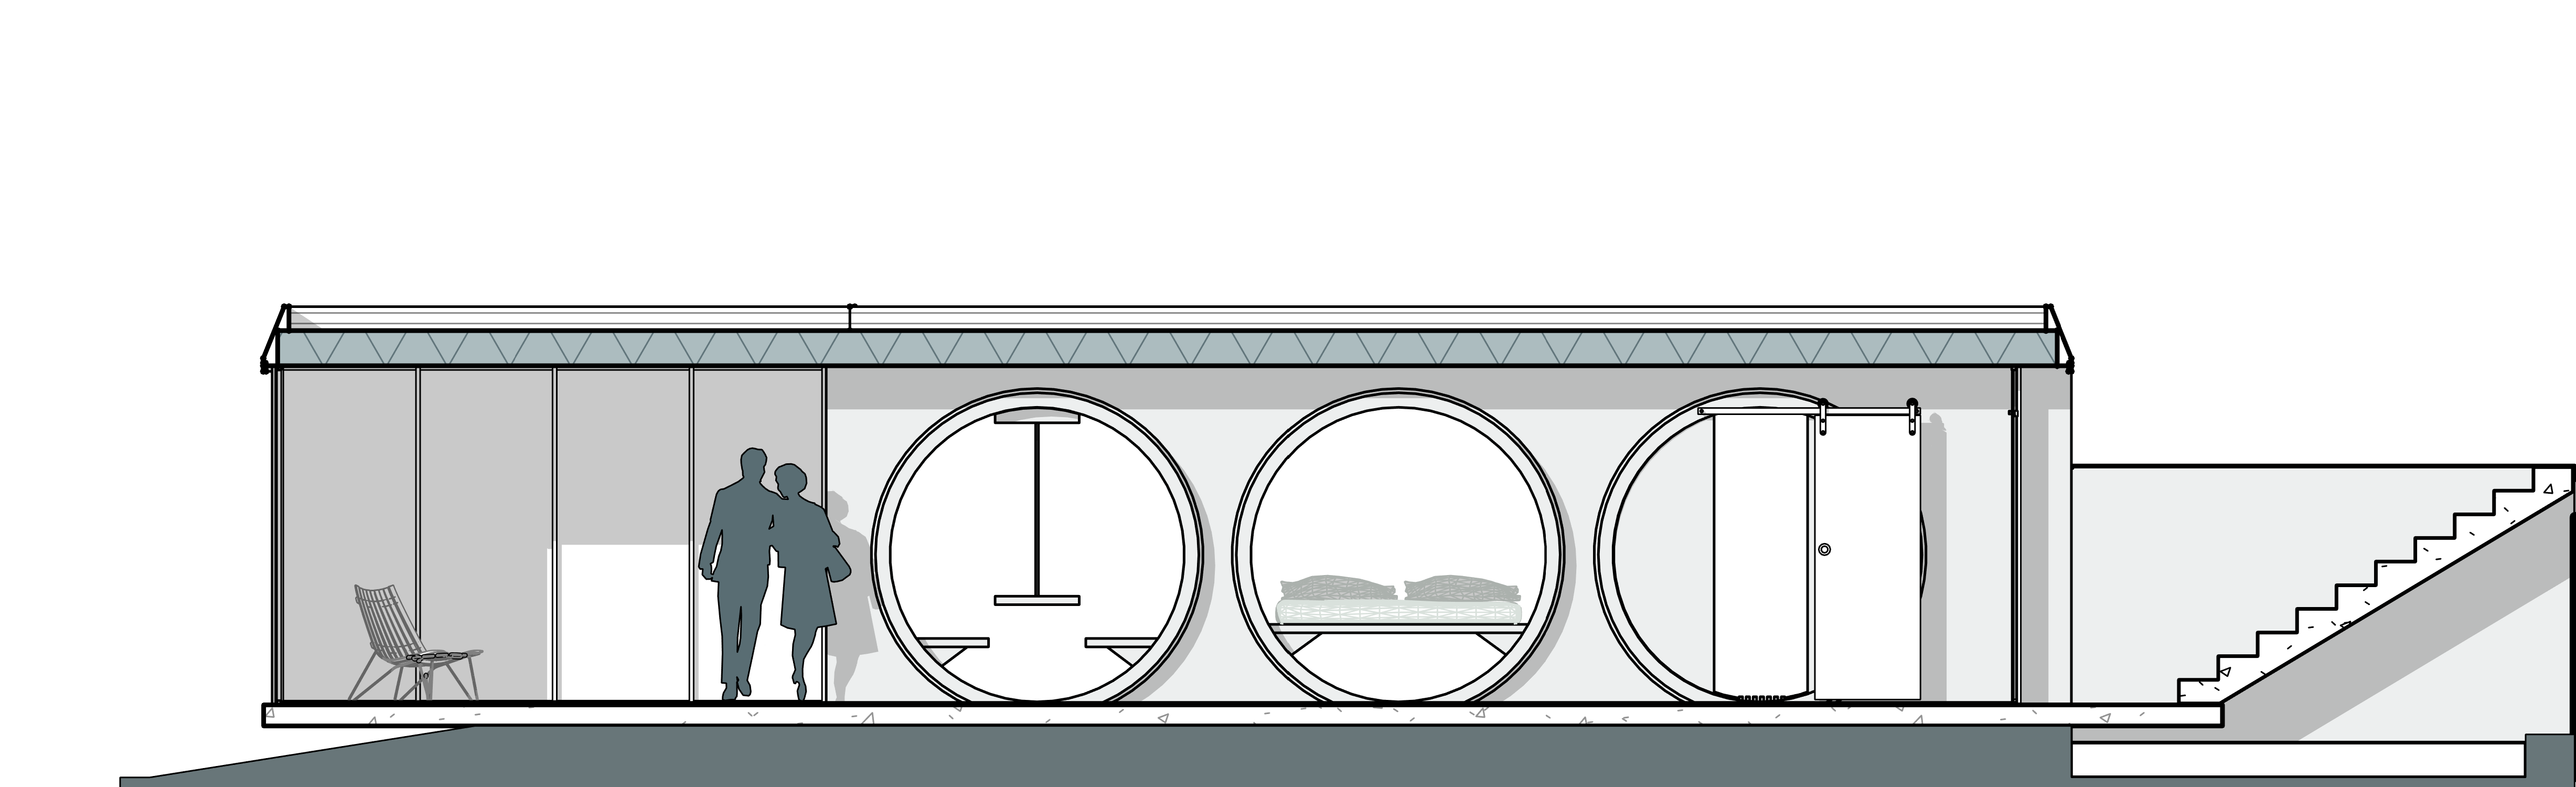 A section showing concrete pipes as rooms